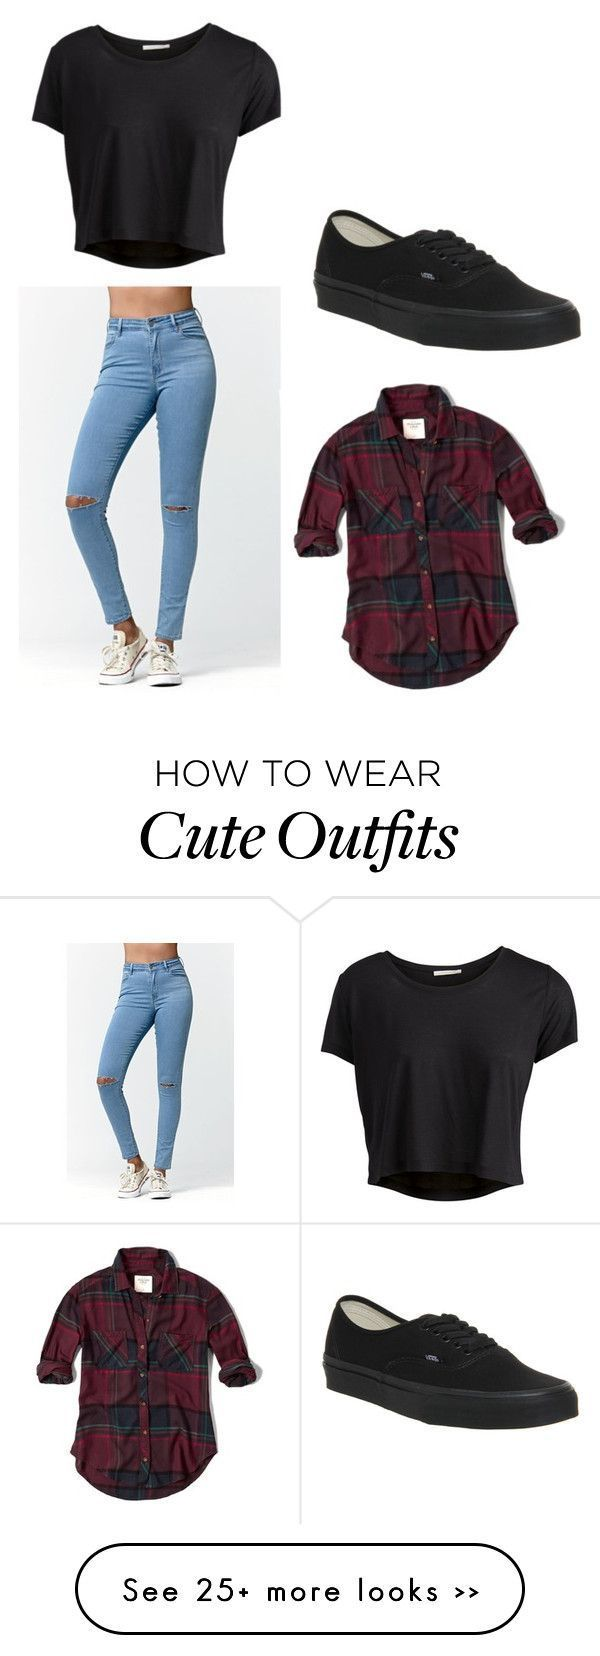 How to Dress Cool in High School (for Guys) photo